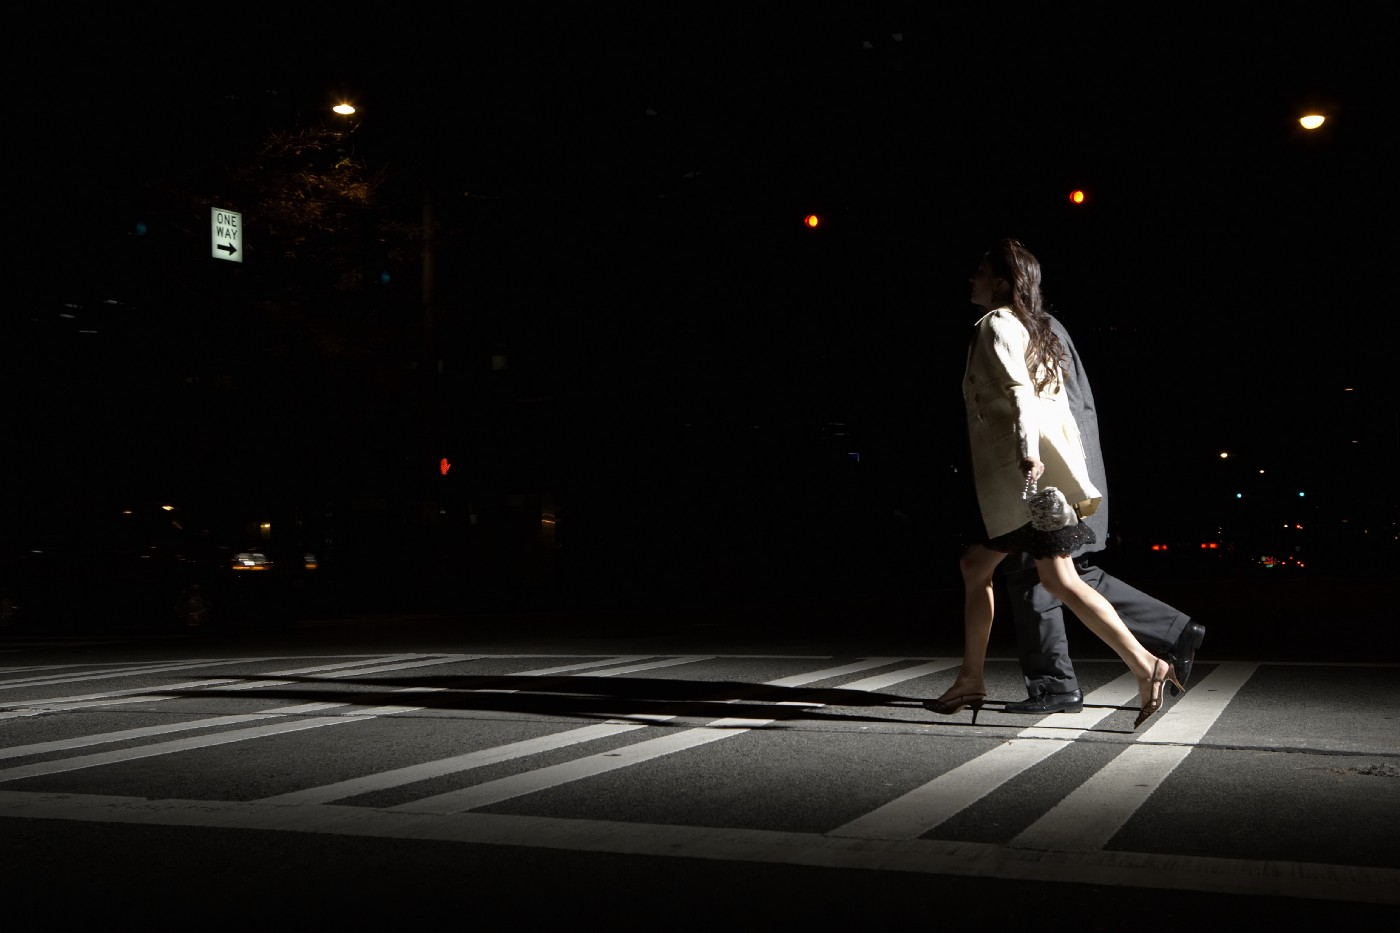 Side view of a young man and woman crossing the street at night.